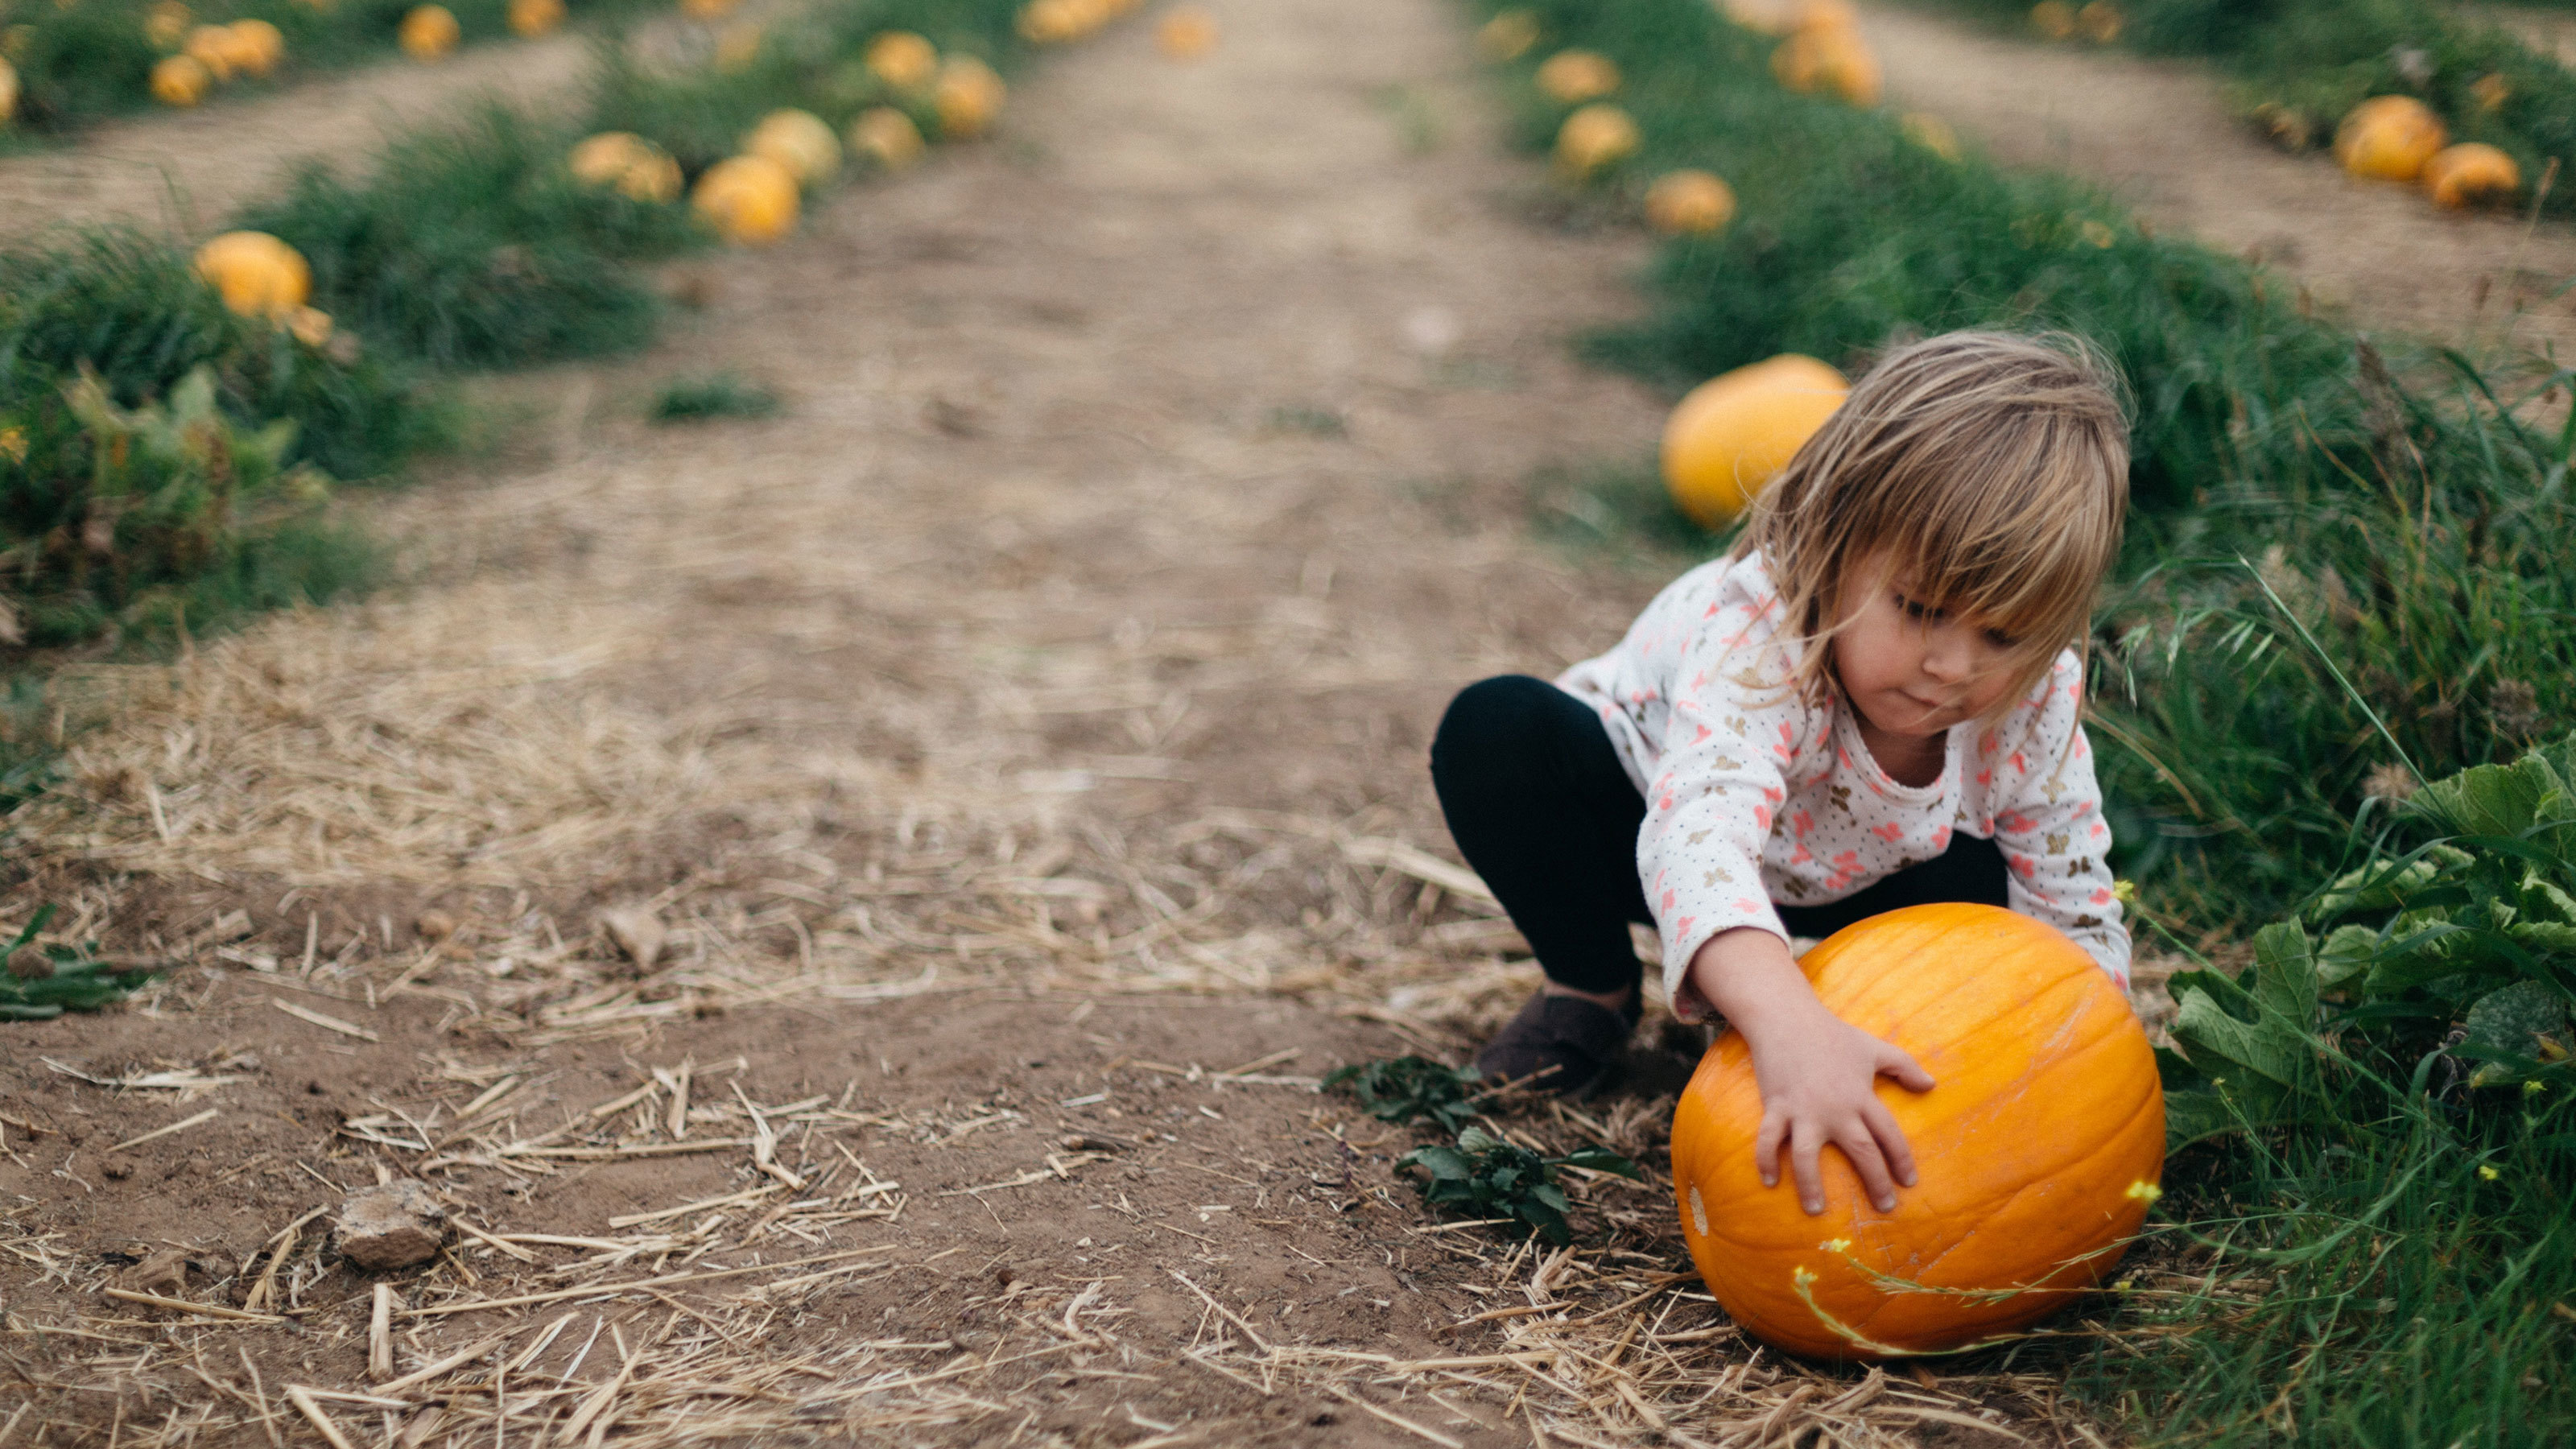 Young-girl-selecting-a-pumpkin-at-a-pick-your-own-farm